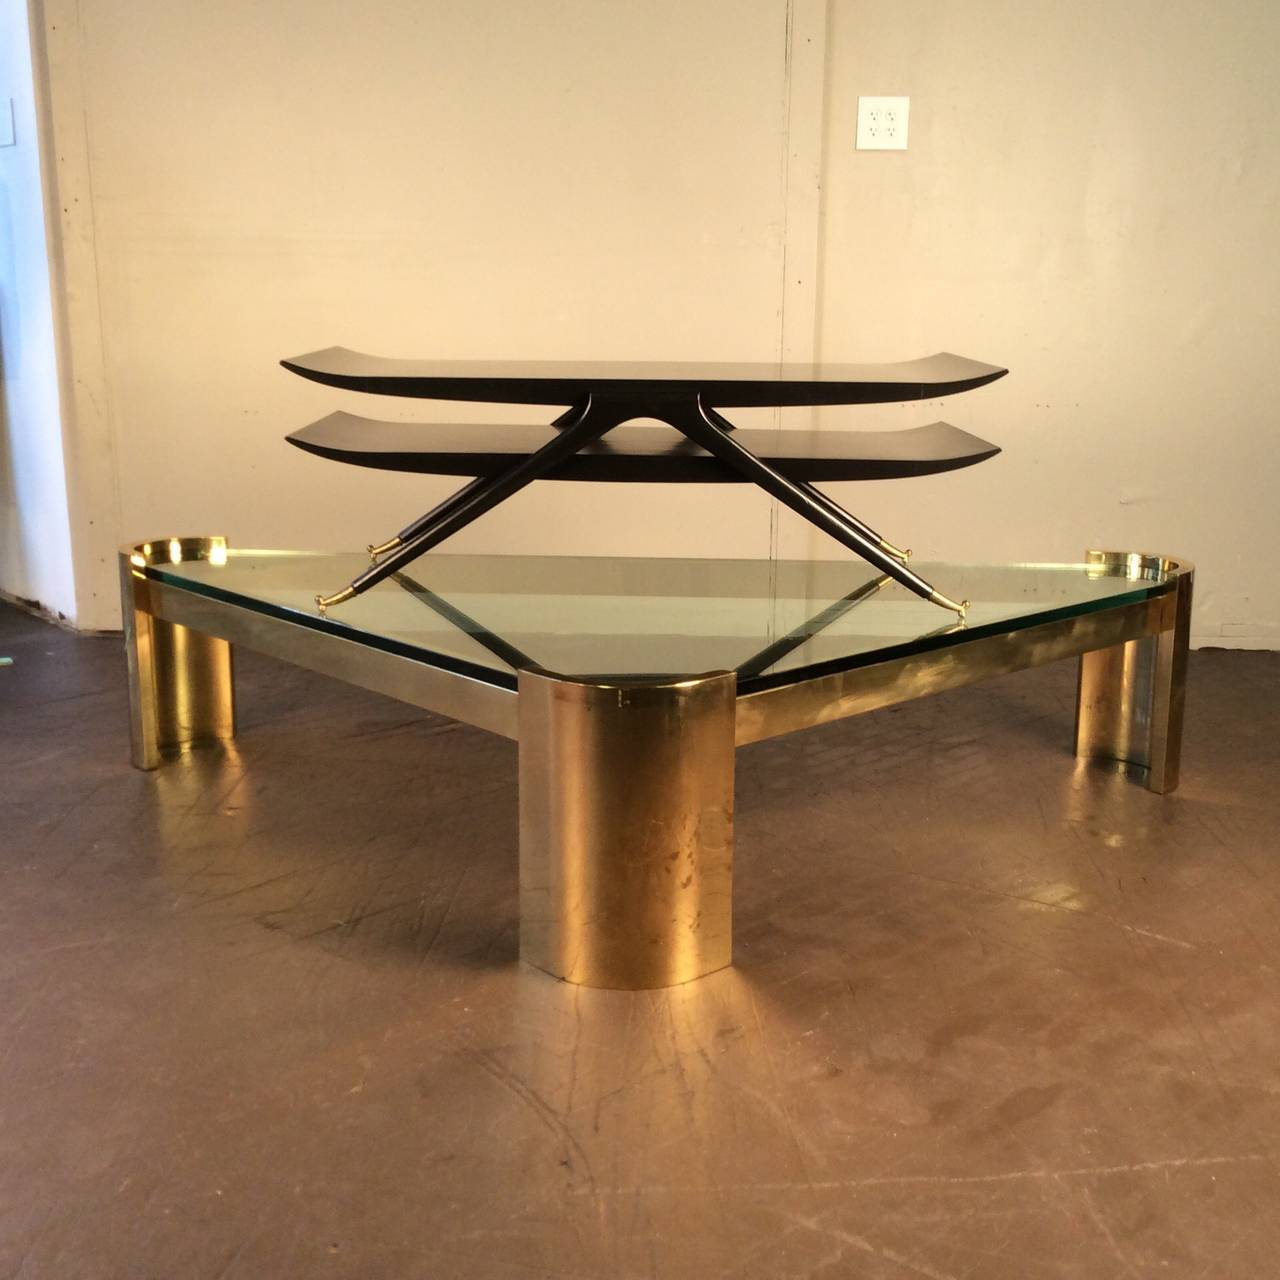 Massive brass triangle coffee table by jay spectre studio circa massive brass triangle coffee table by jay spectre studio circa 1980 2 geotapseo Choice Image